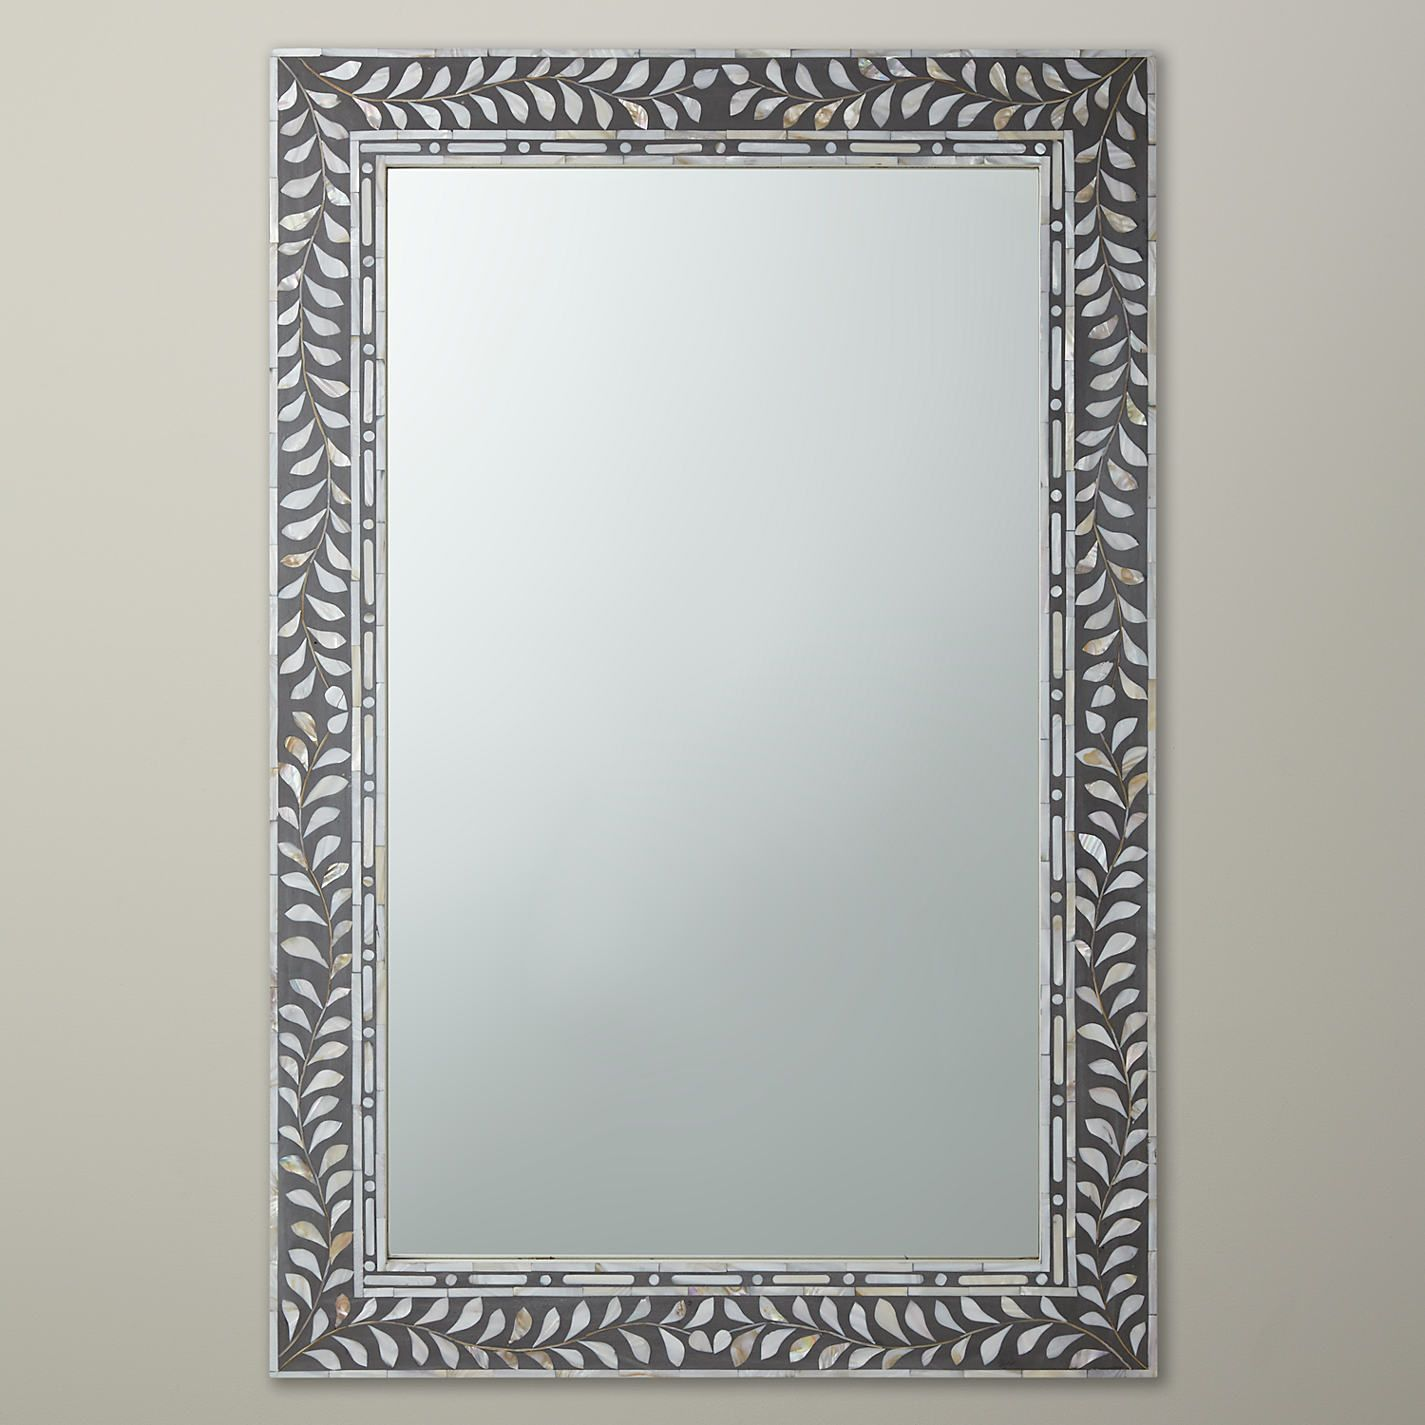 Mother Of Pearl Inlay Mirror Frame Mother Of Pearl Mirror Mirror Wall Bone Inlay Mirror